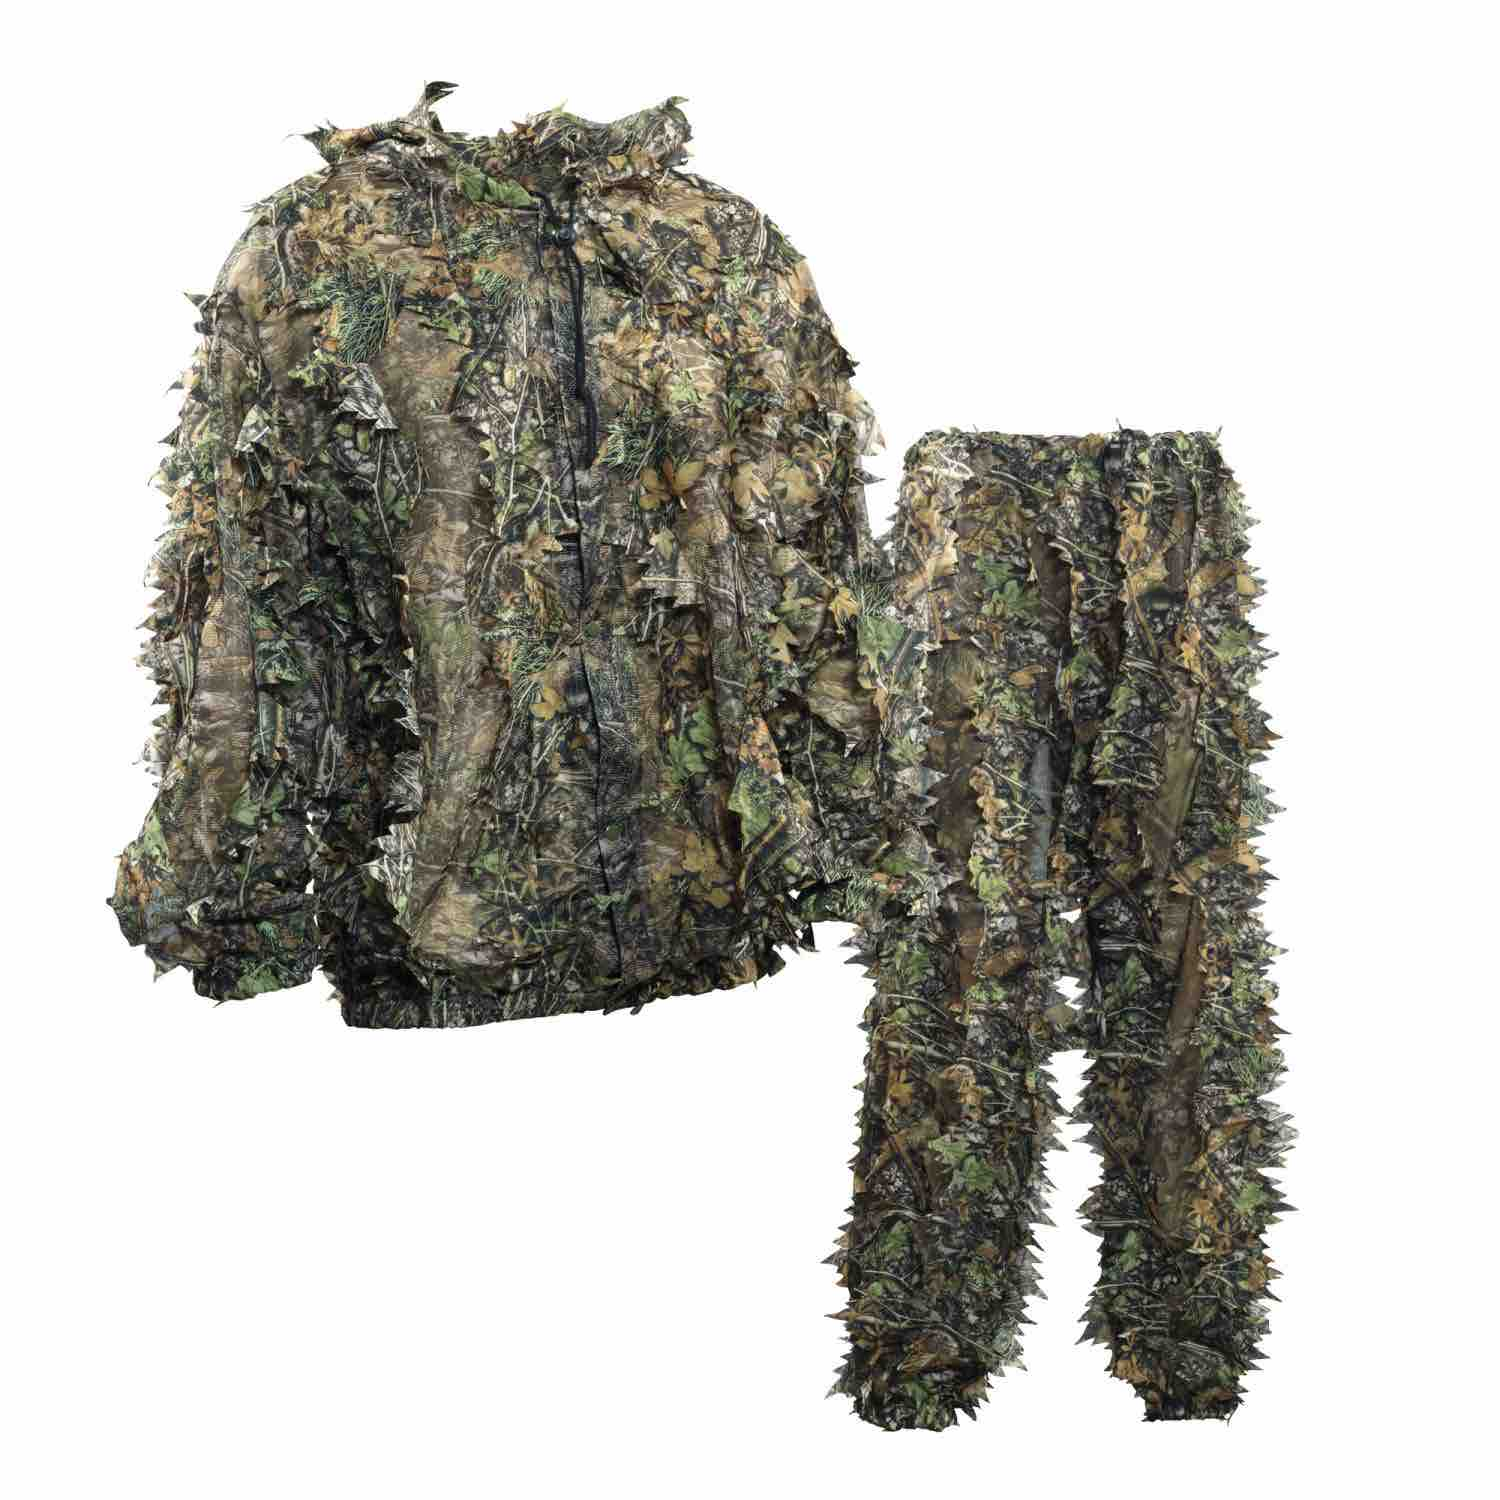 http://myshop.s3-external-3.amazonaws.com/shop4795900.pictures.DH2065-1_Pull_over_pak_3d_sneaky_camo_deerhunter.jpg